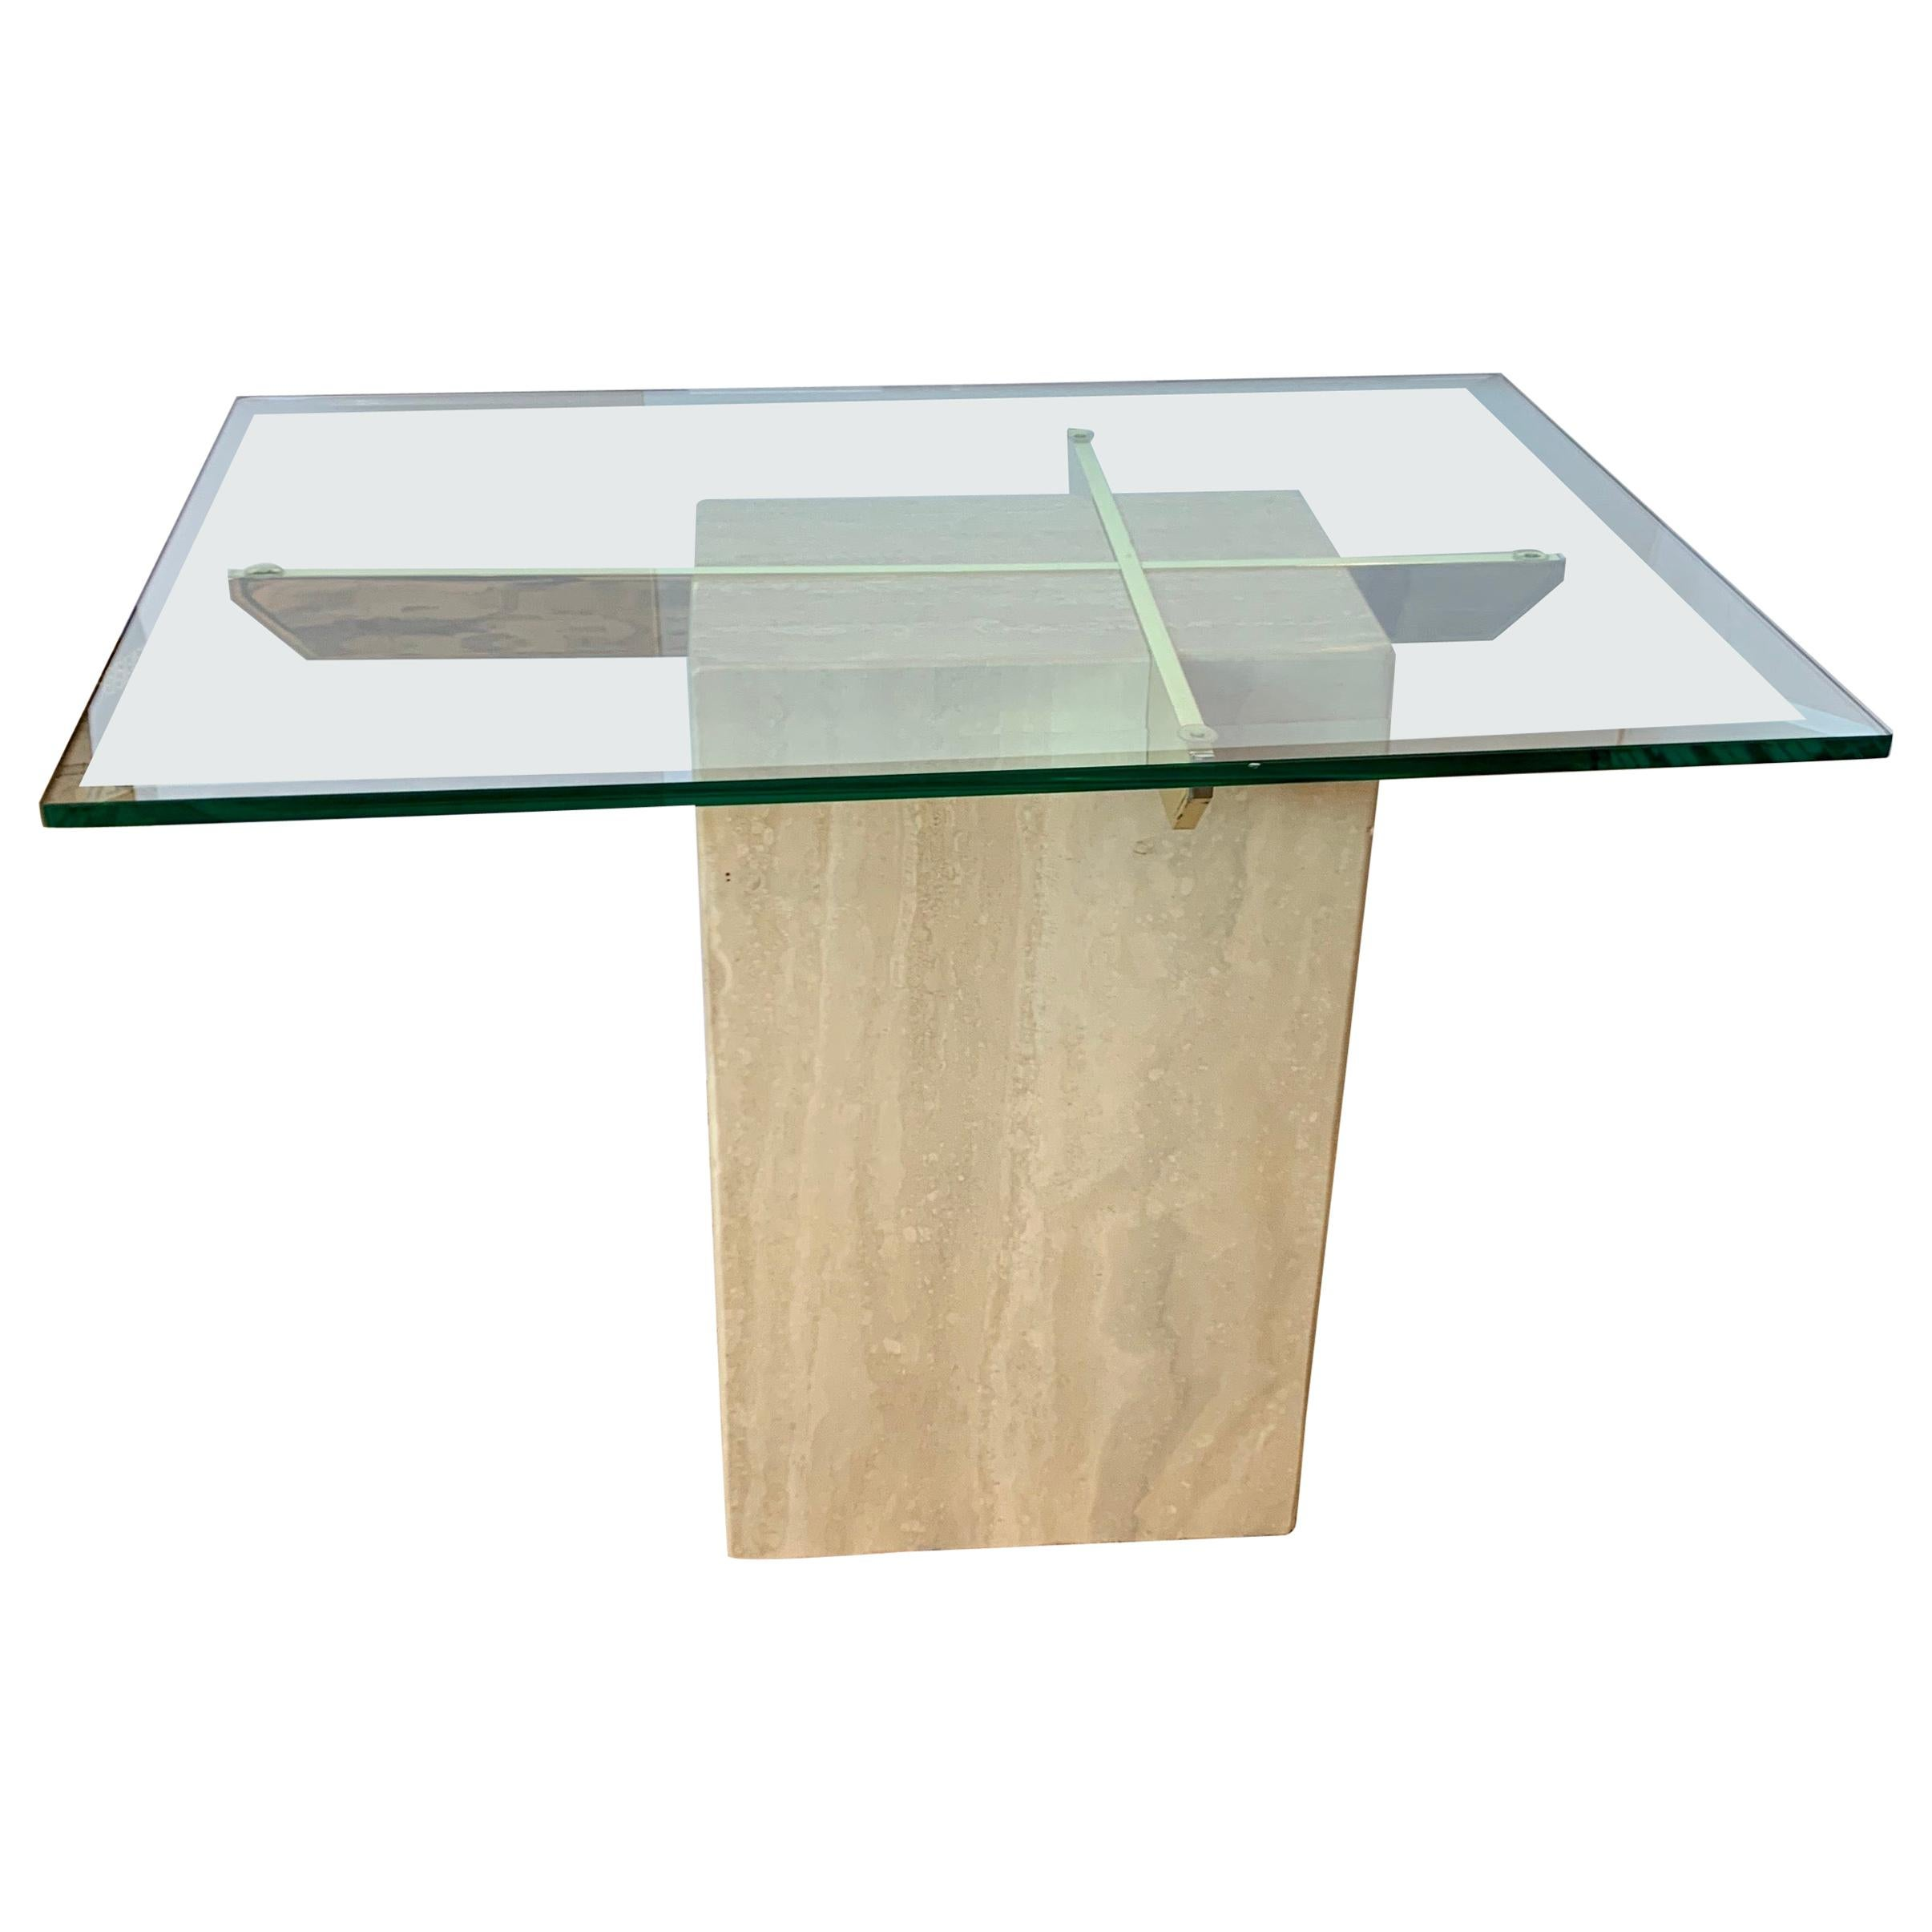 Midcentury Artedi Travertine Glass and Brass Side Table, Made in Italy